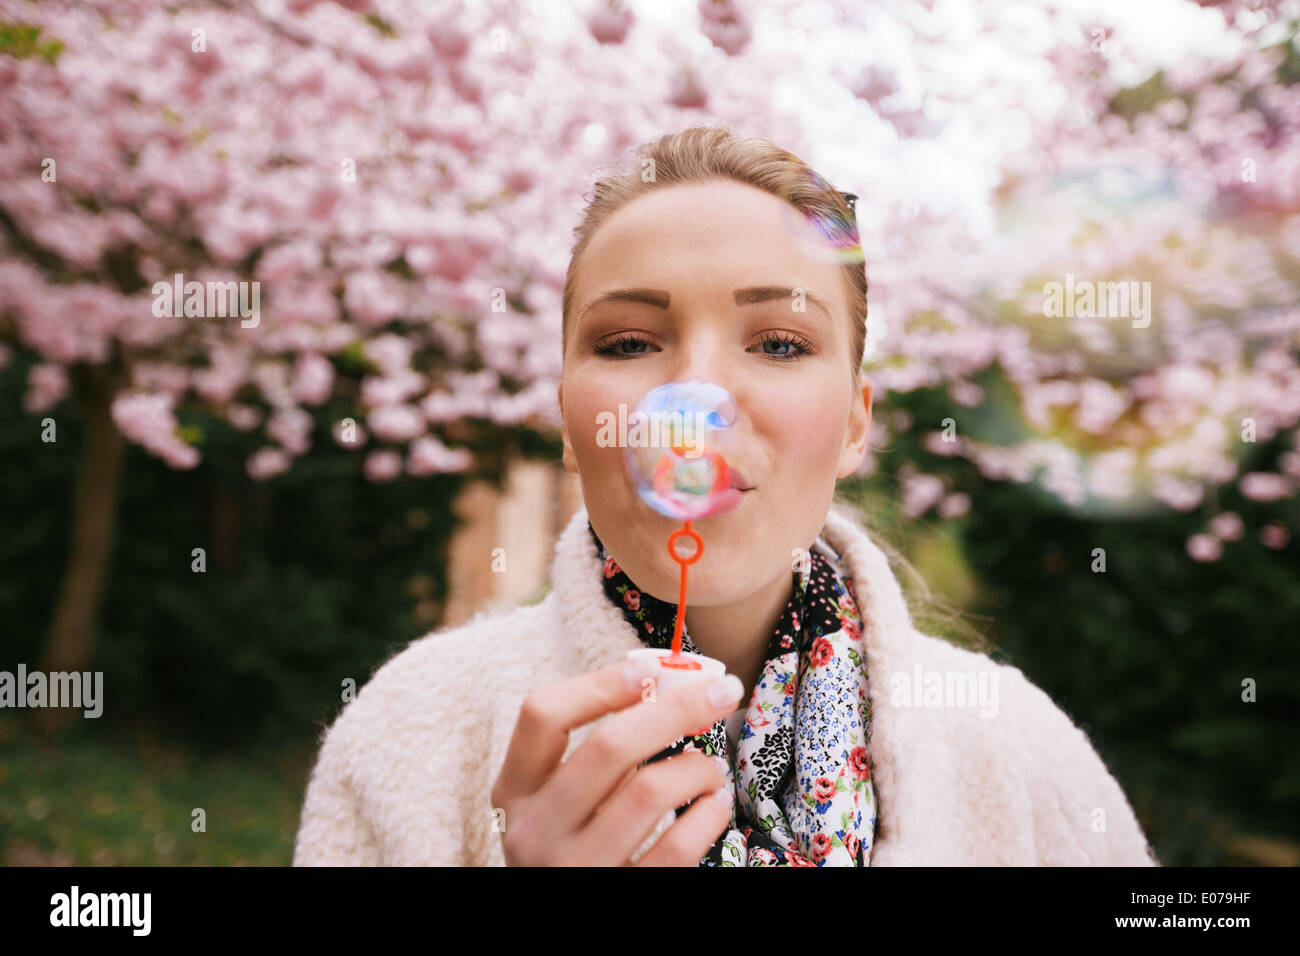 Portrait of beautiful young woman blowing bubbles at park. Pretty female model with bubble wand at spring blossom - Stock Image